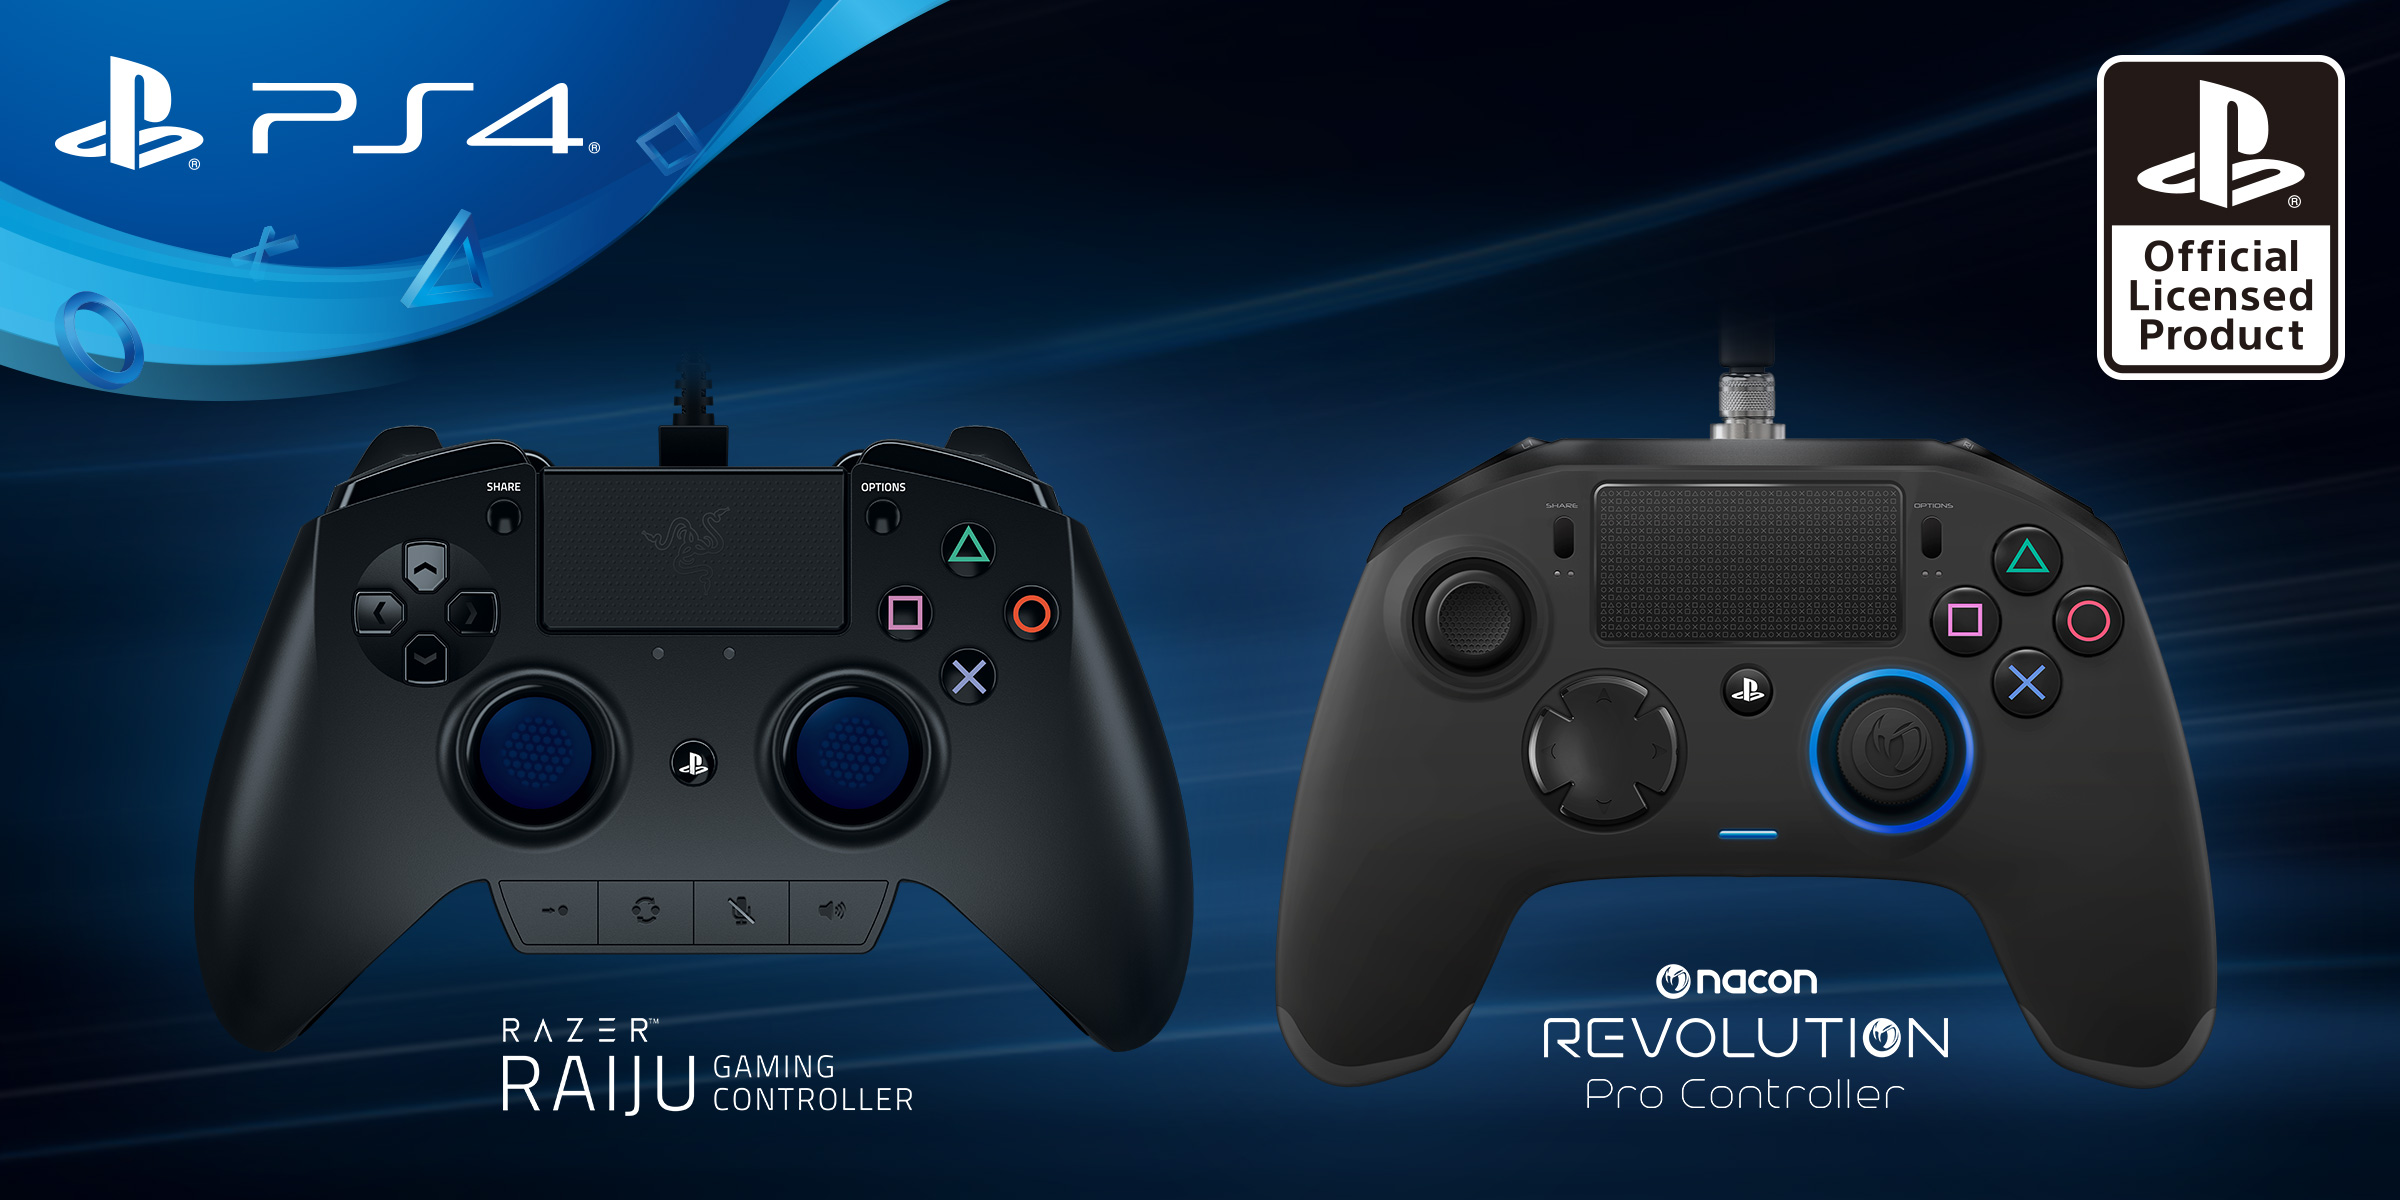 Sony recruits Razer, Nacon to build pro-level PlayStation 4 controllers